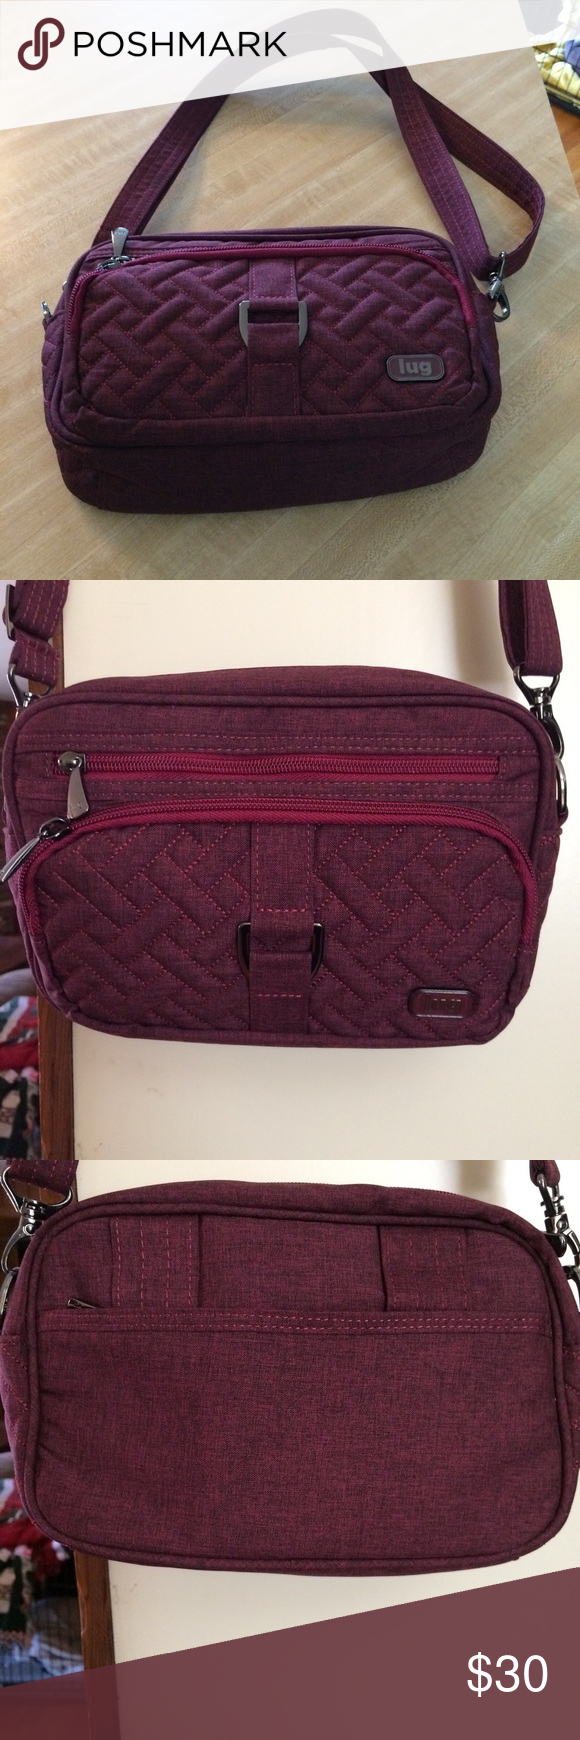 29c658384 This is a fabulous Crossbody bag for travel. This bag is lightweight, has  compartment in the front that is RFID compliant and it has 4 zippered  porches.